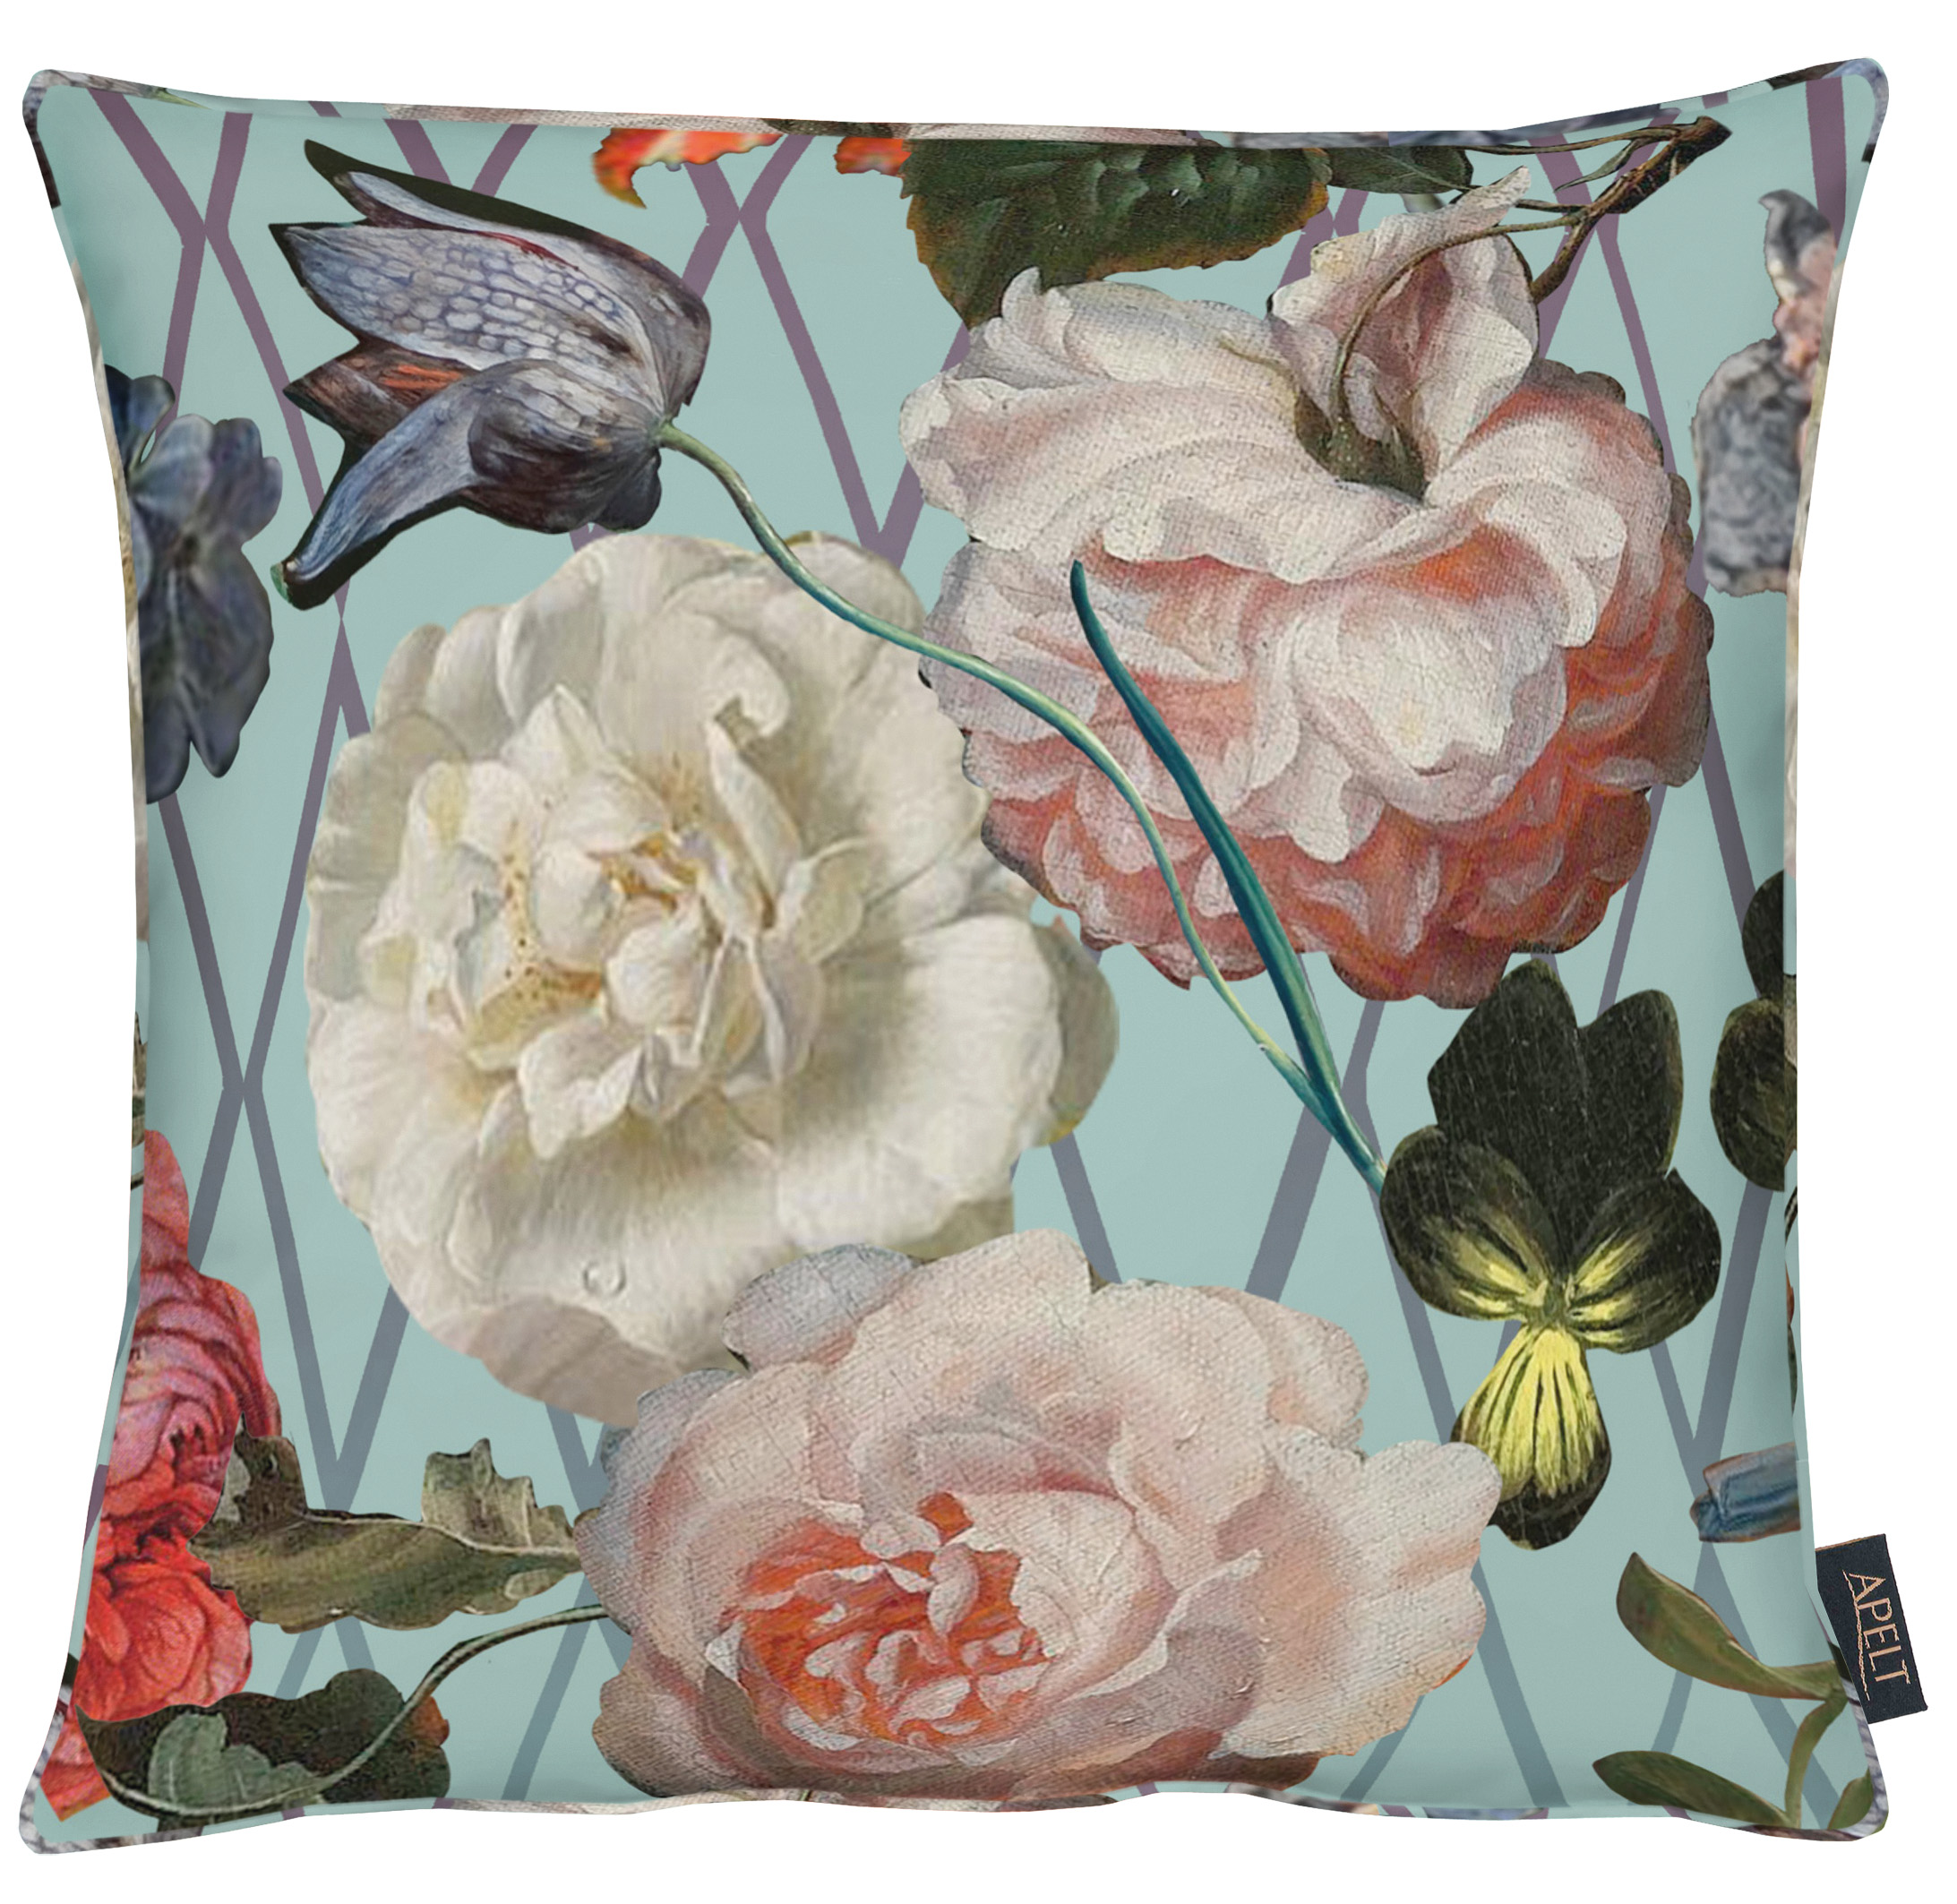 Sibylla Paris Green Velvet Cushion 46x46cm